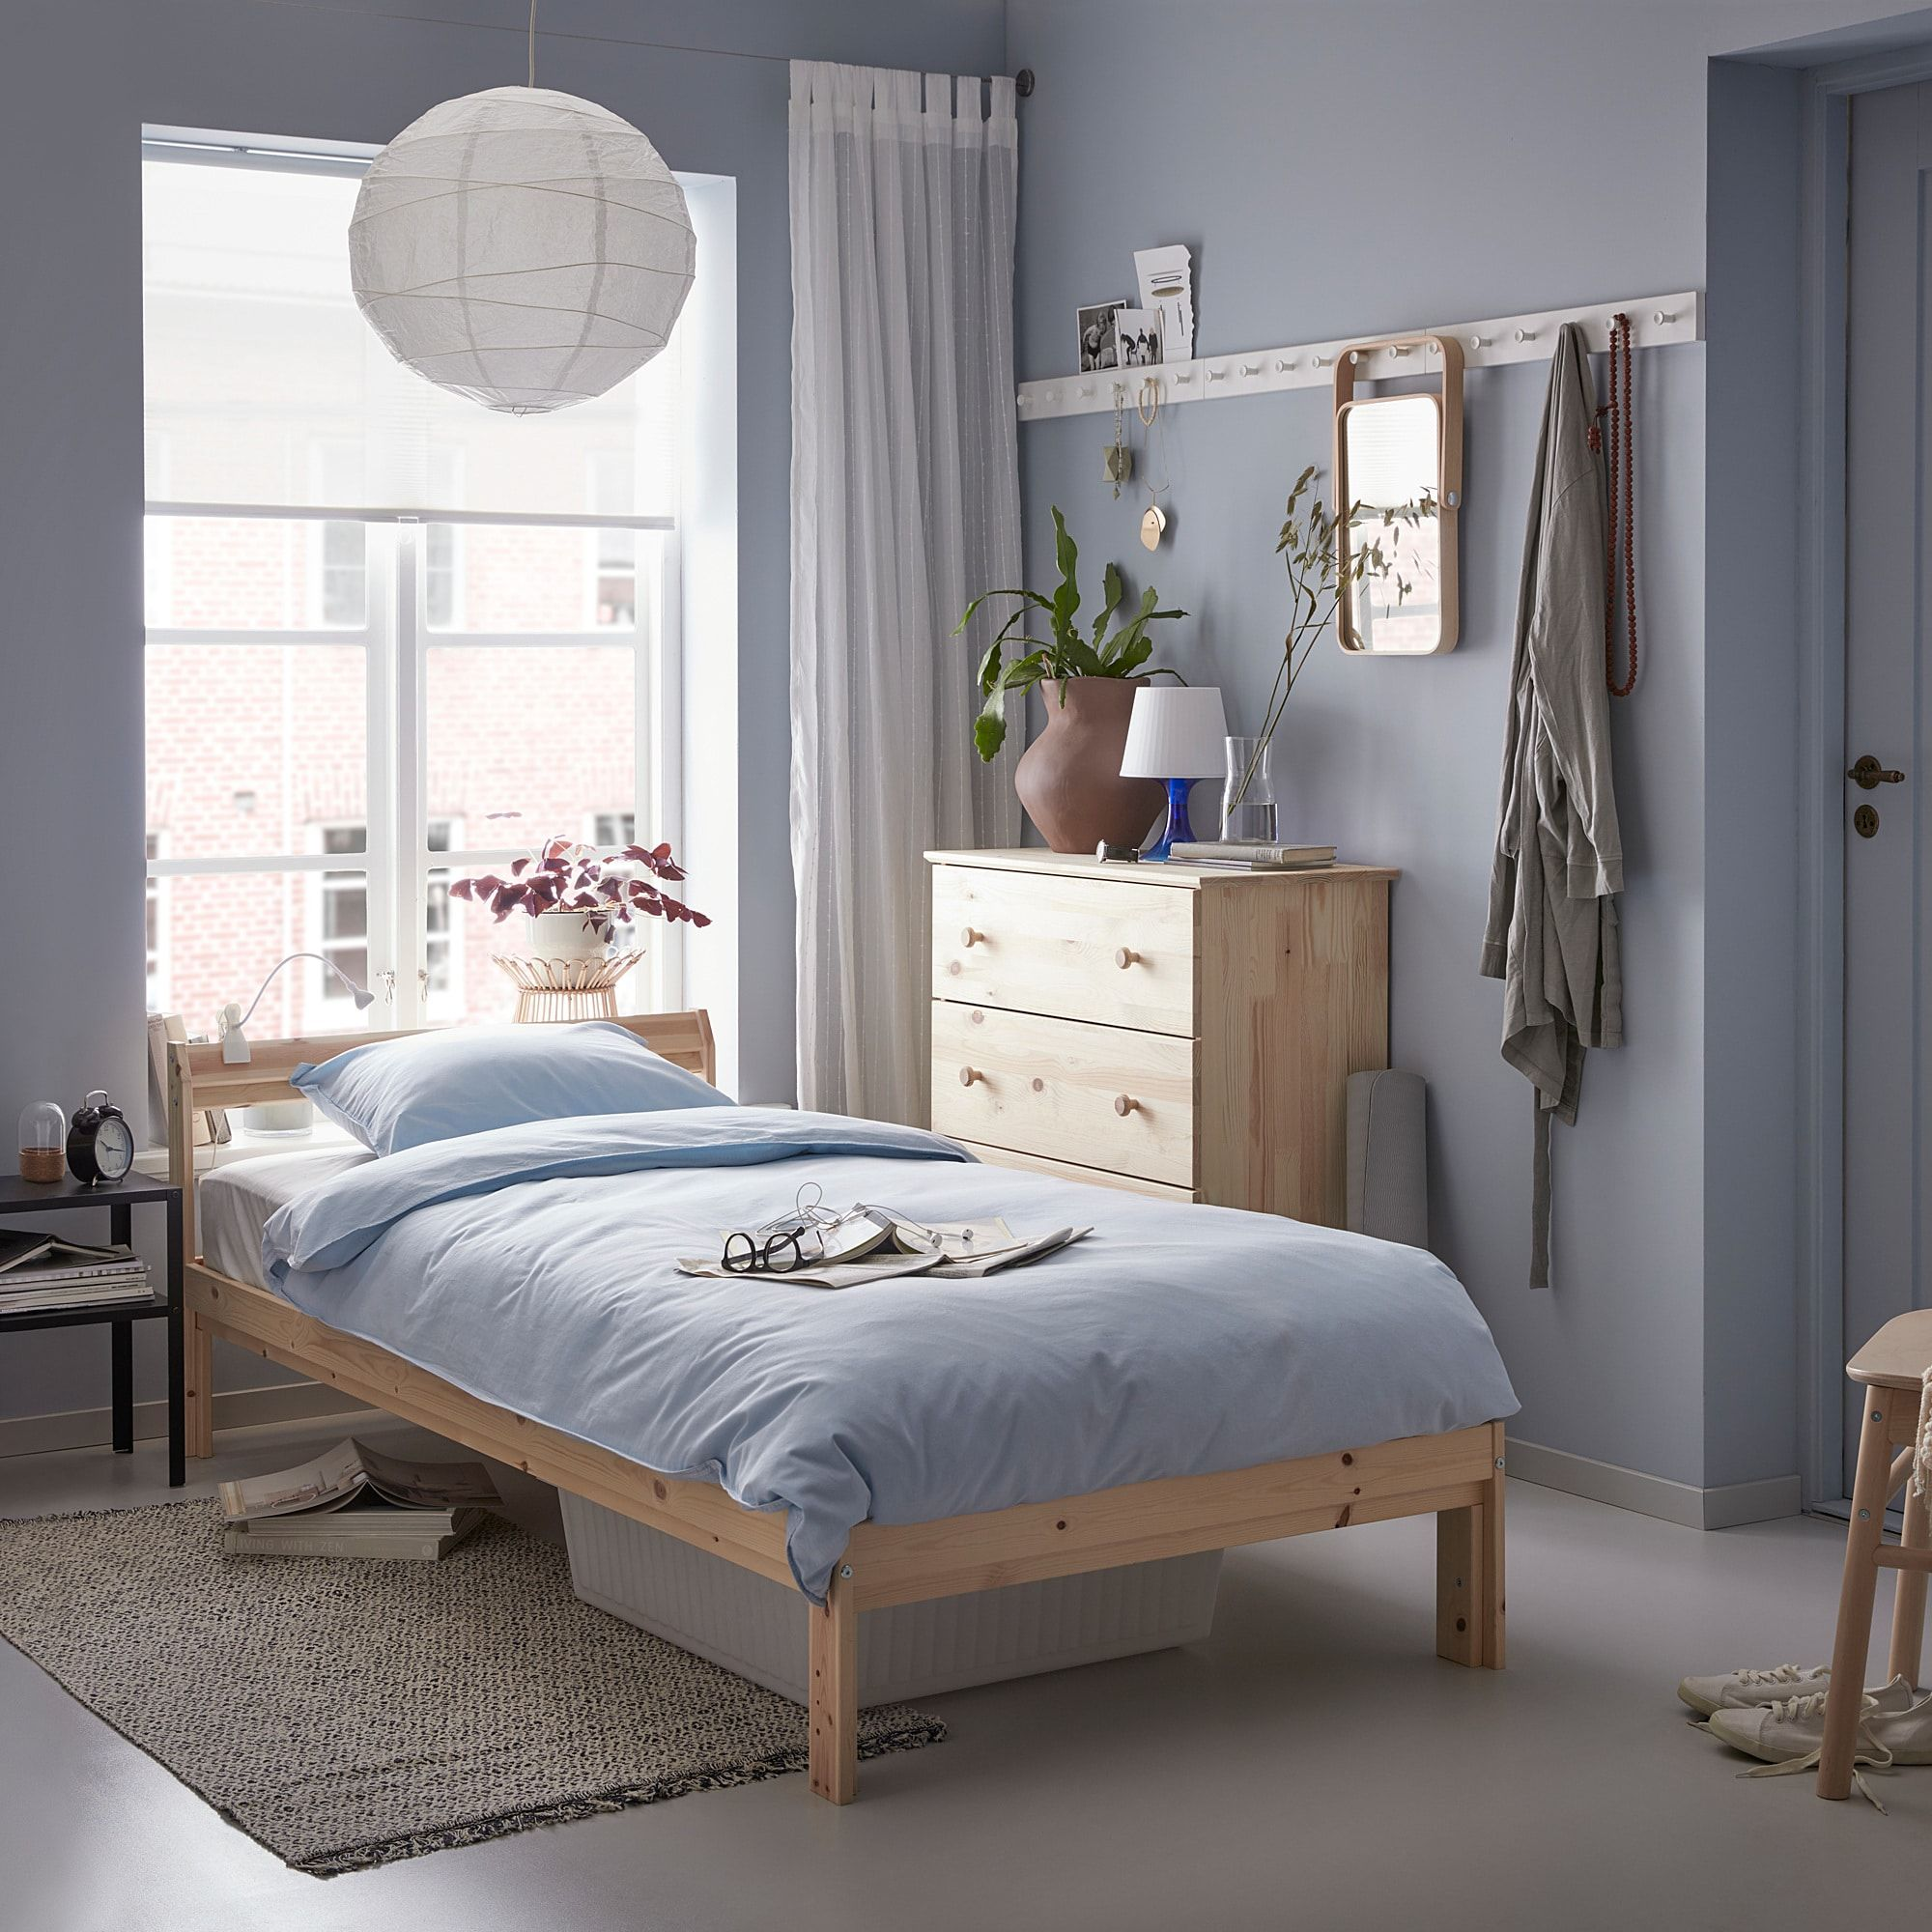 Furniture Home Furnishings Find Your Inspiration Bettgestell Holzbetten Ikea Bett